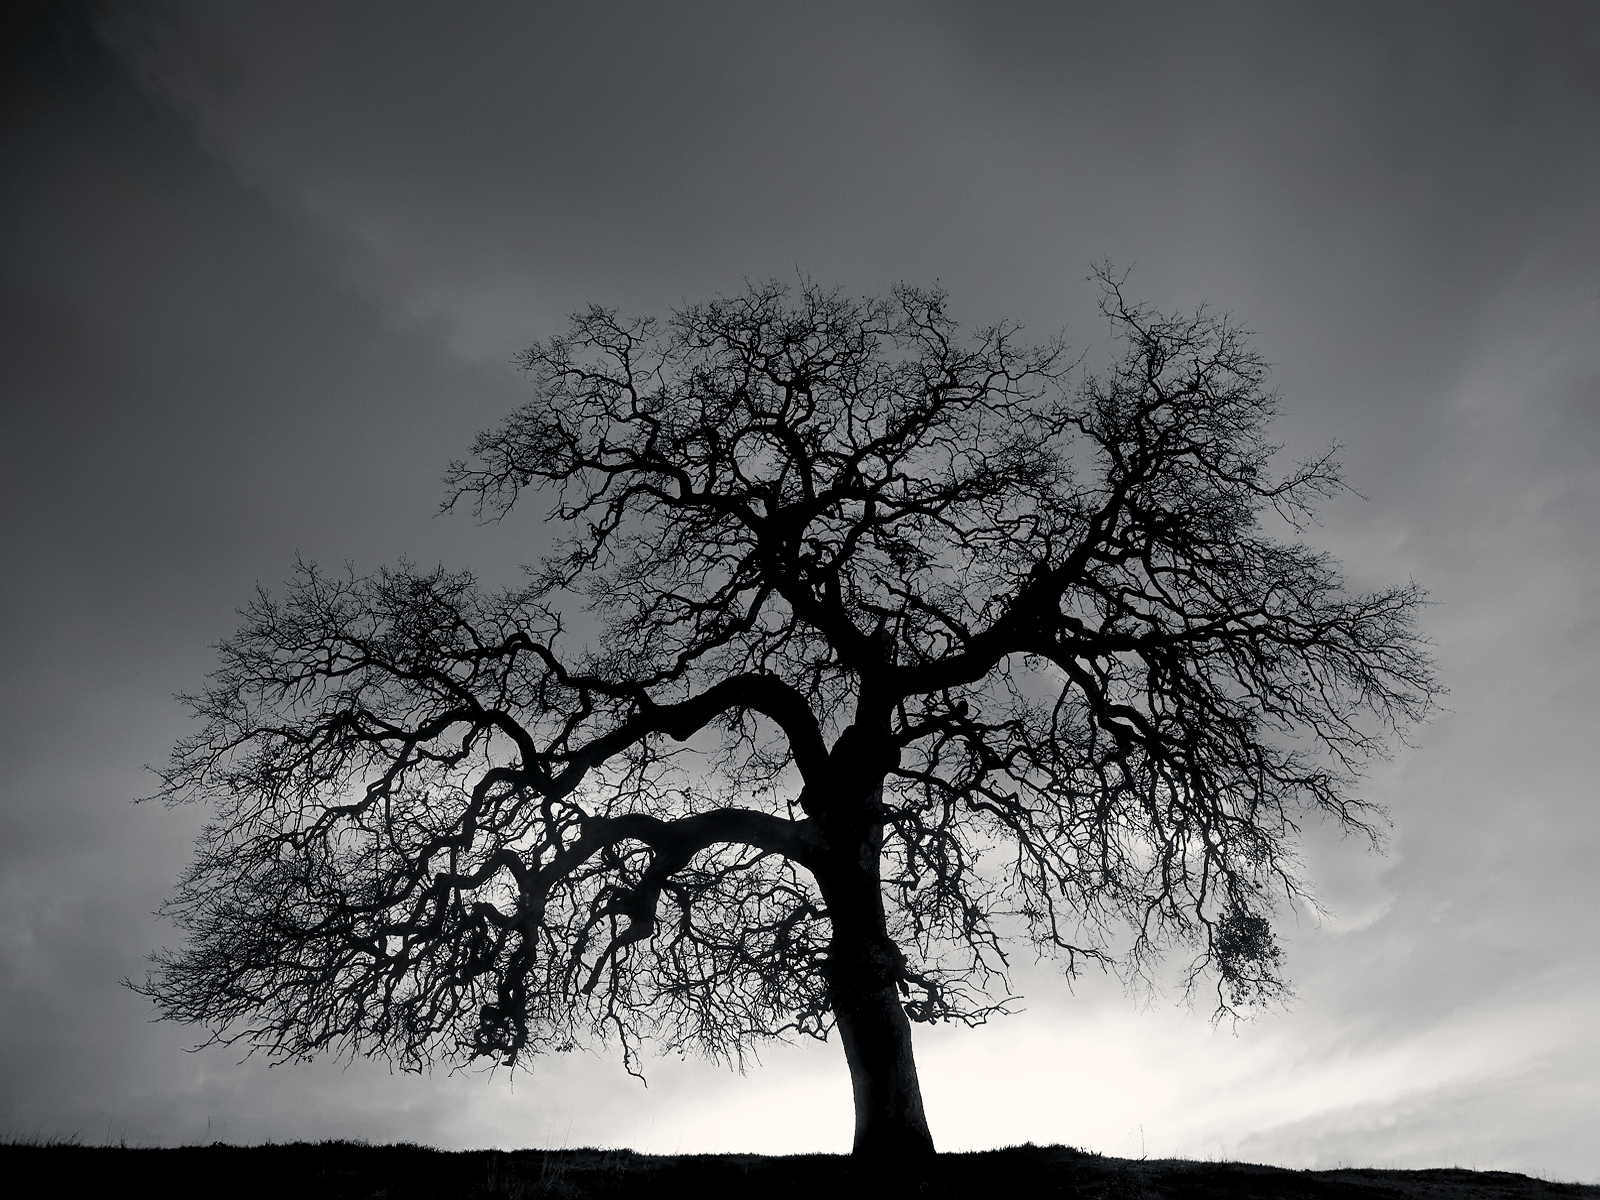 Black And White Images Of Trees 40 Cool Wallpaper 1600x1200